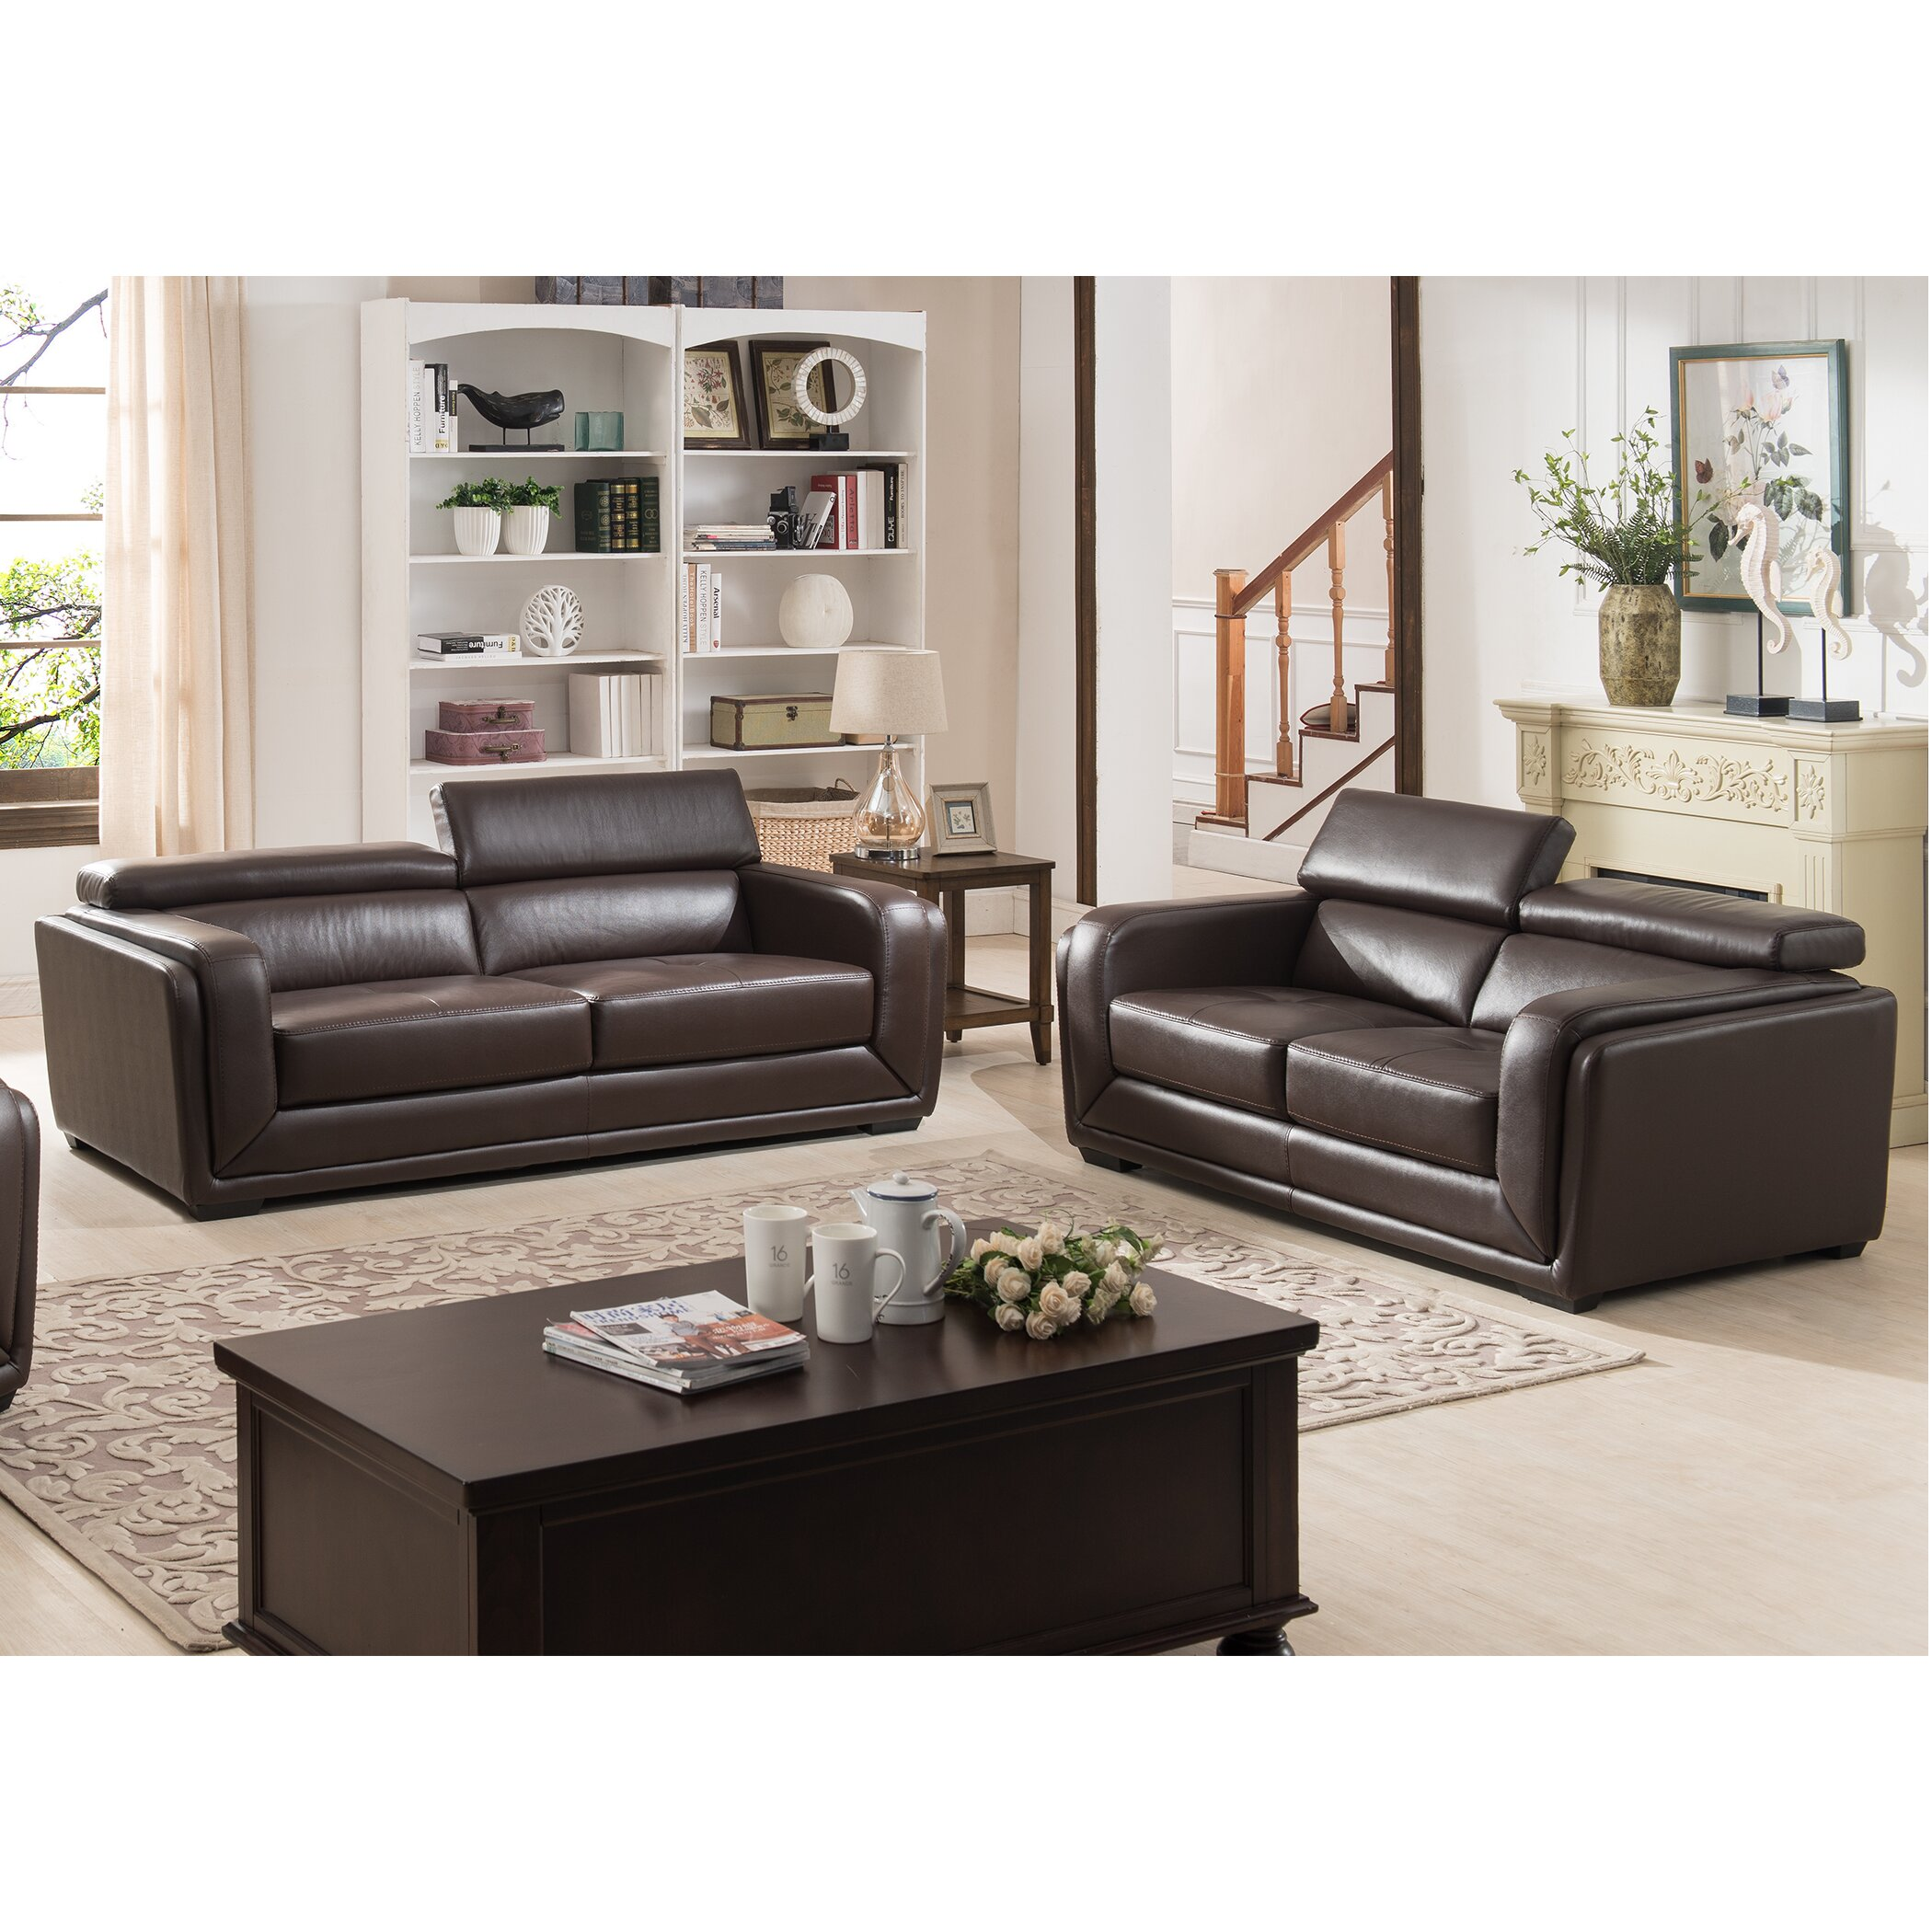 Ac pacific calvin modern leather 2 piece living room set wayfair 2 piece leather living room set